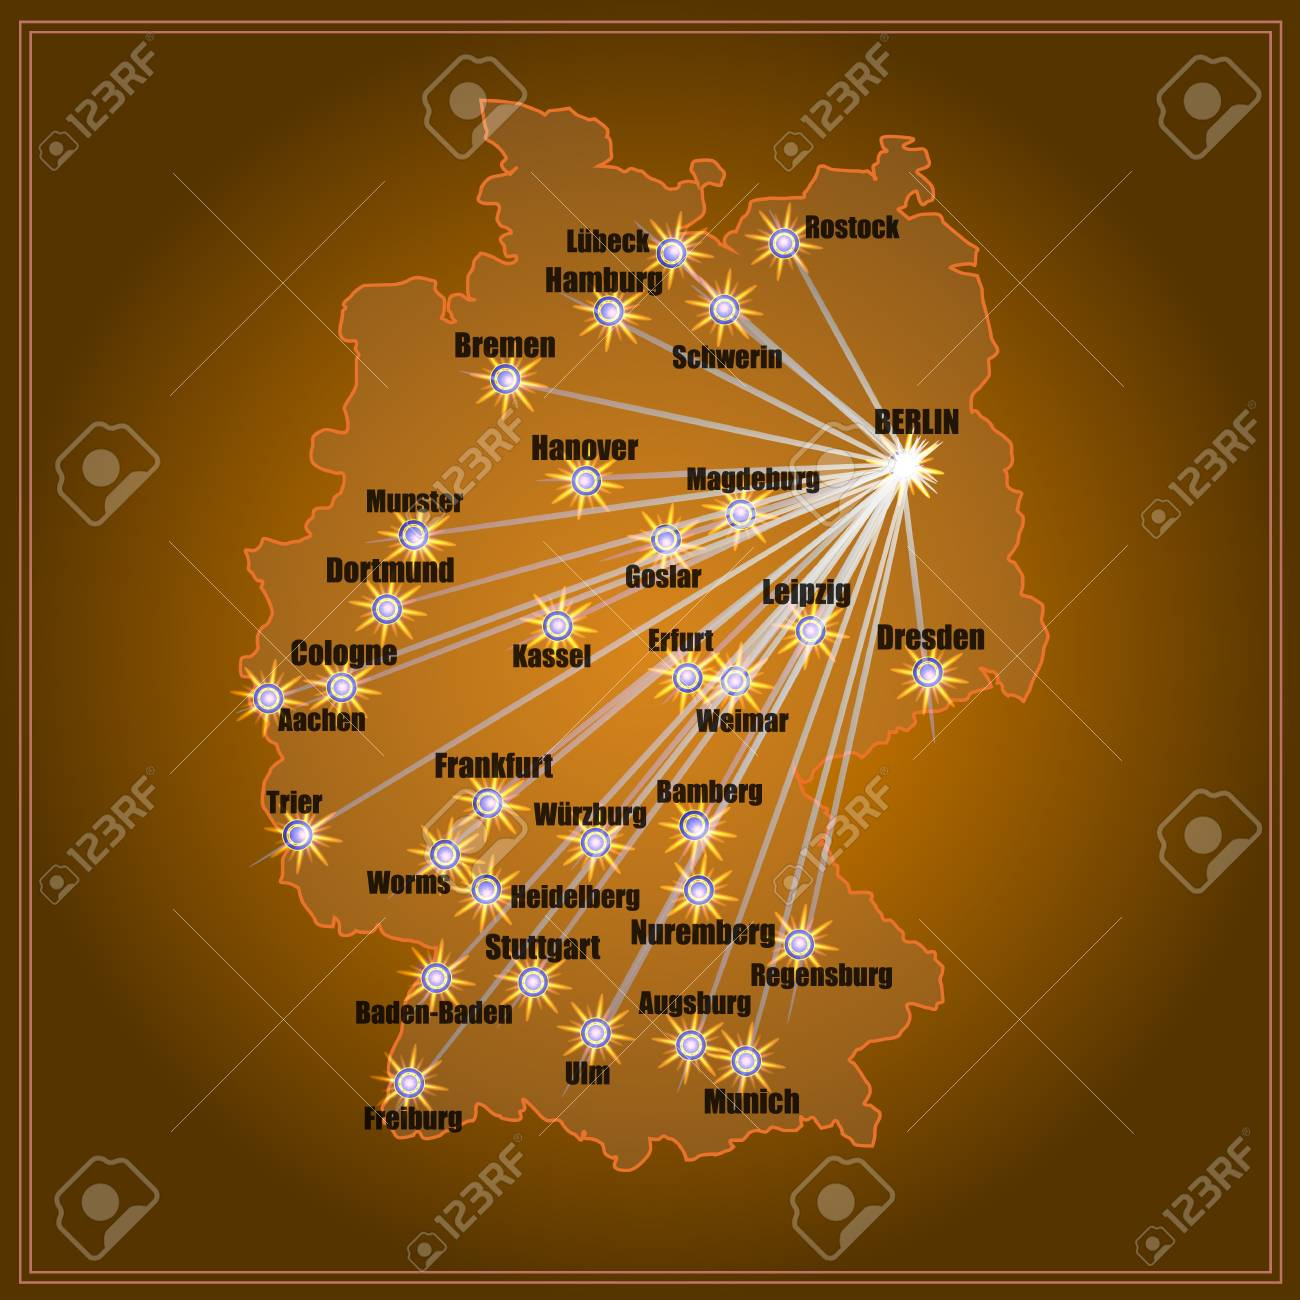 Germany Map Of Cities.Bright Map Of Germany With Cities Illustration In Gold Colors